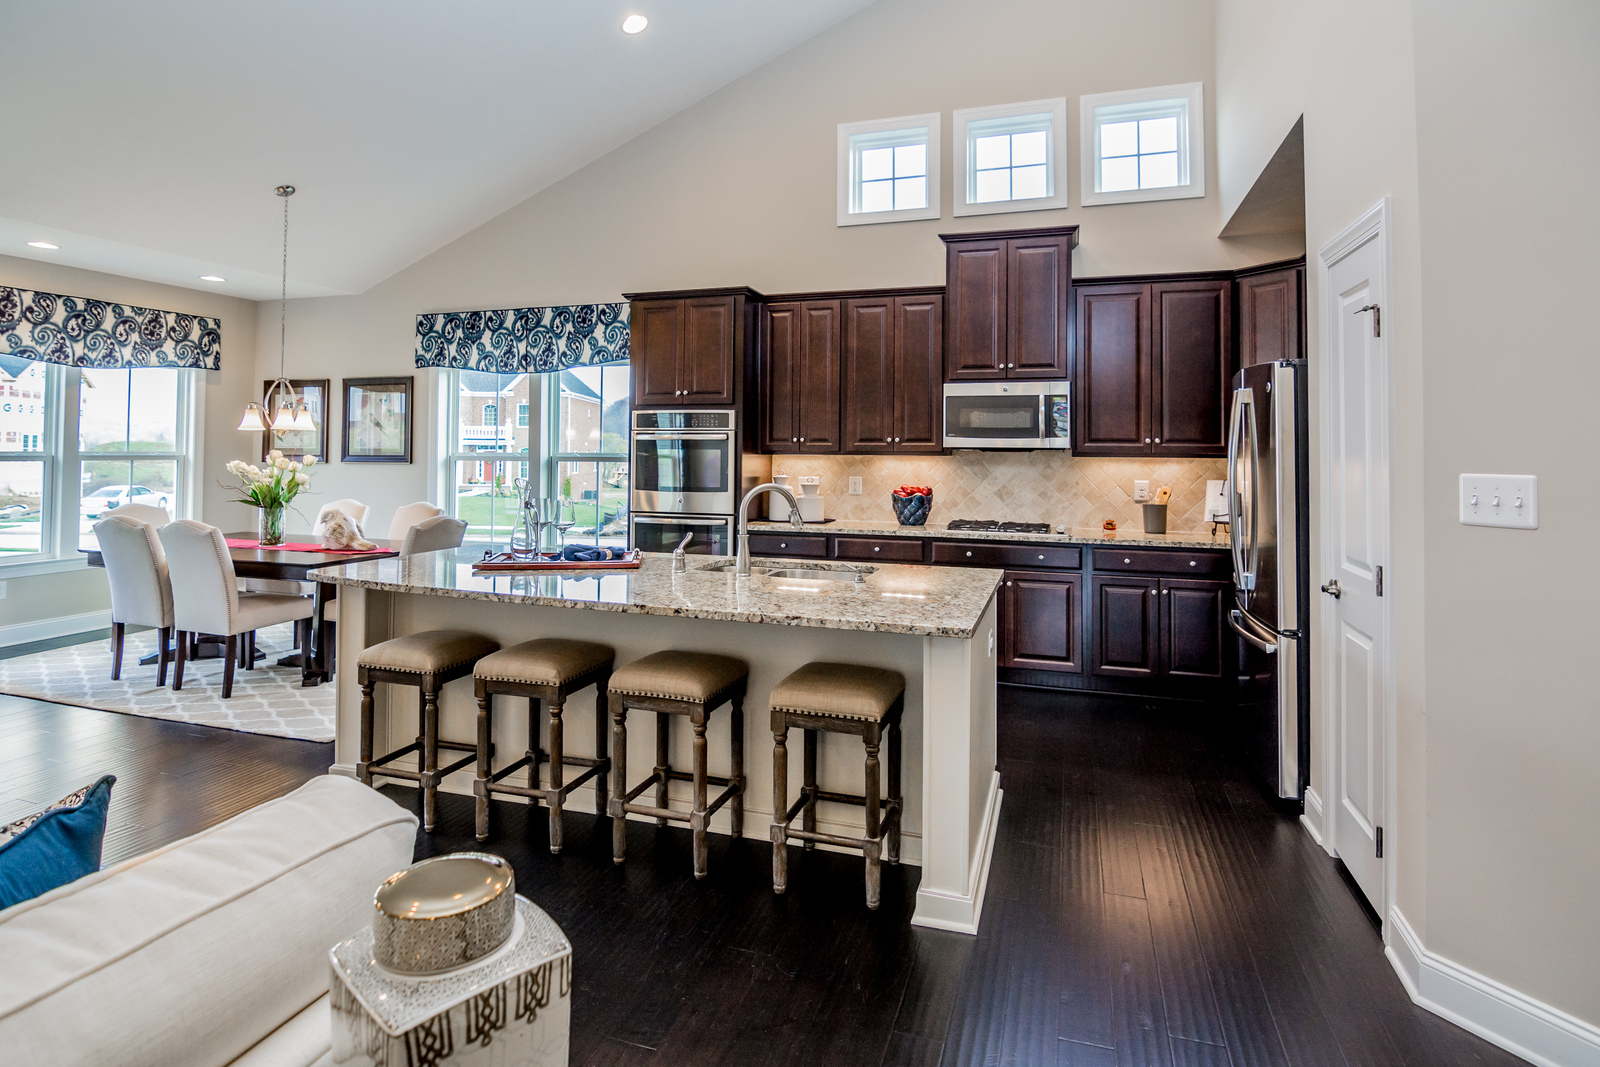 Forest Landing at Bethany Beach - Single Family Homes